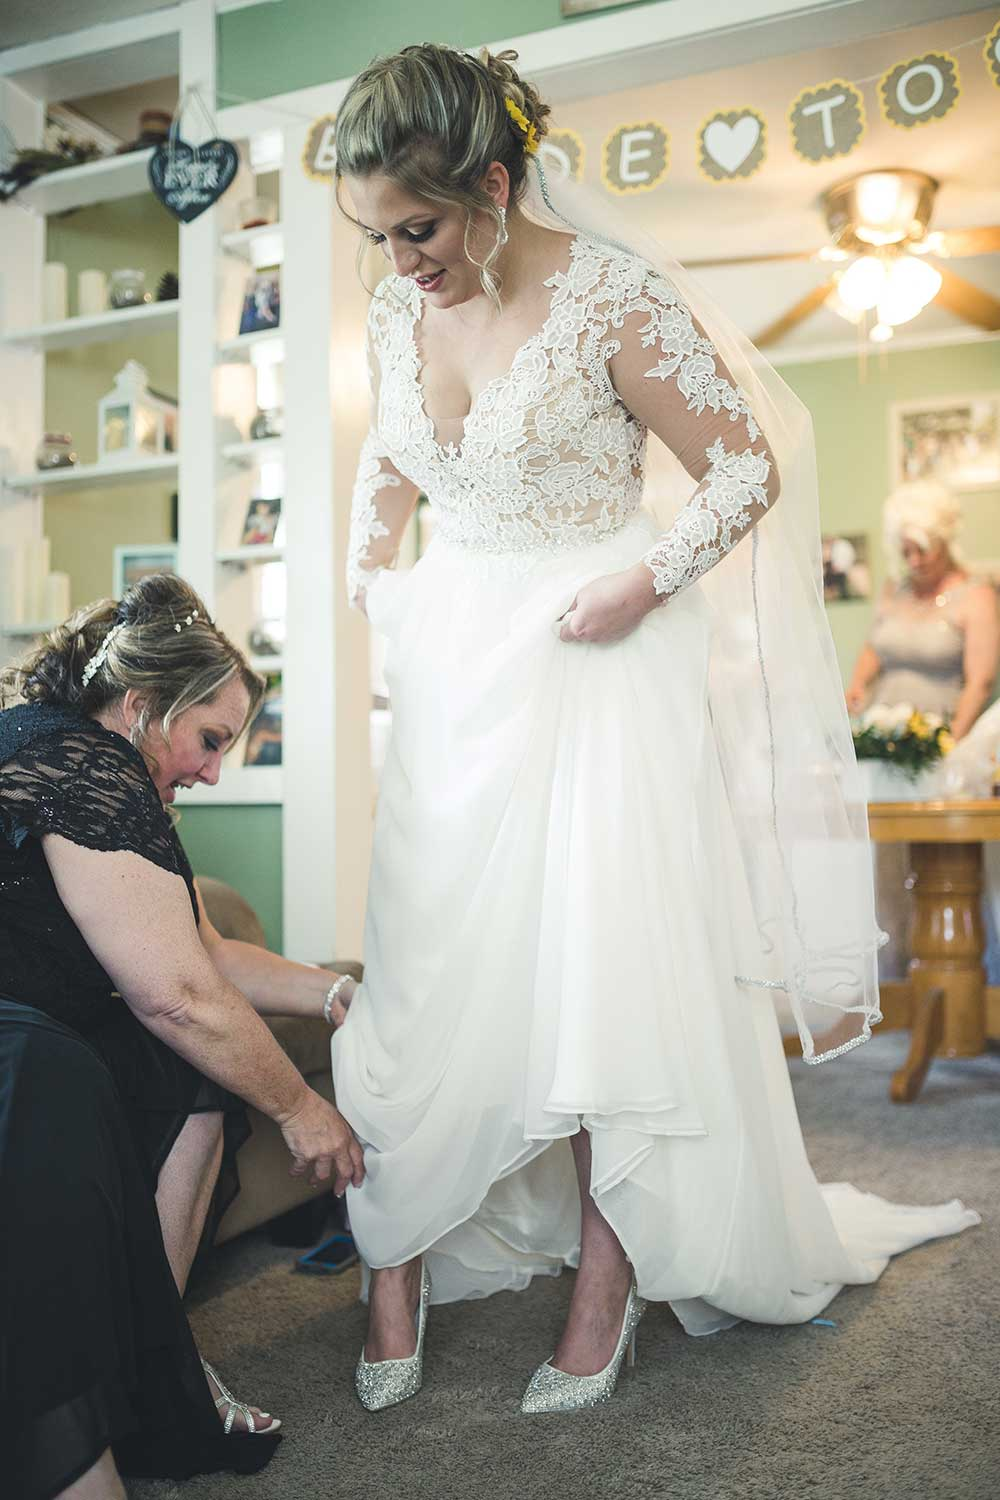 Mother of the bride helping her into her shoes